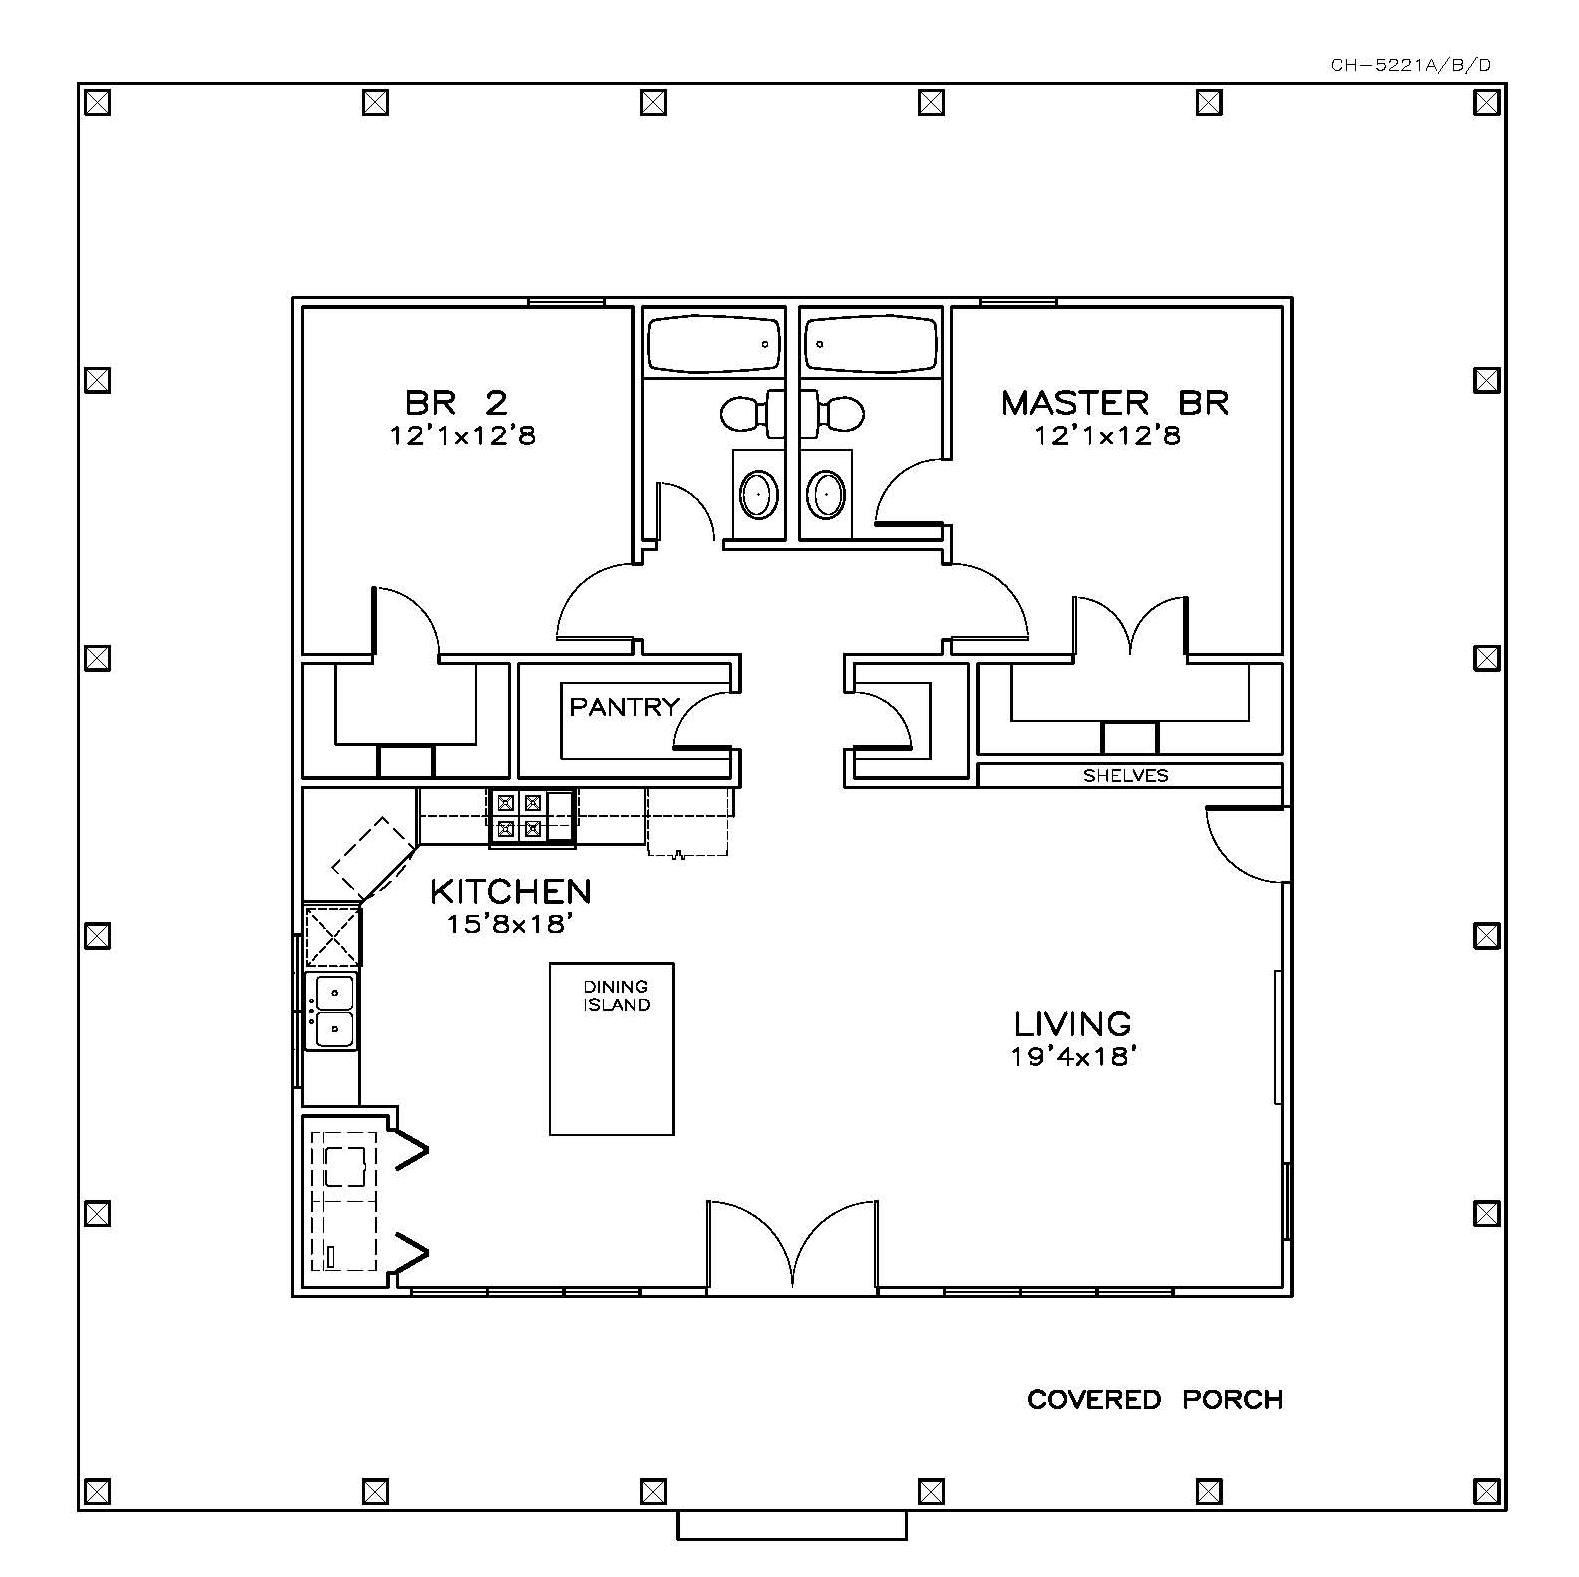 Southern House Plan 155 2 Bedrm Sq Ft Home